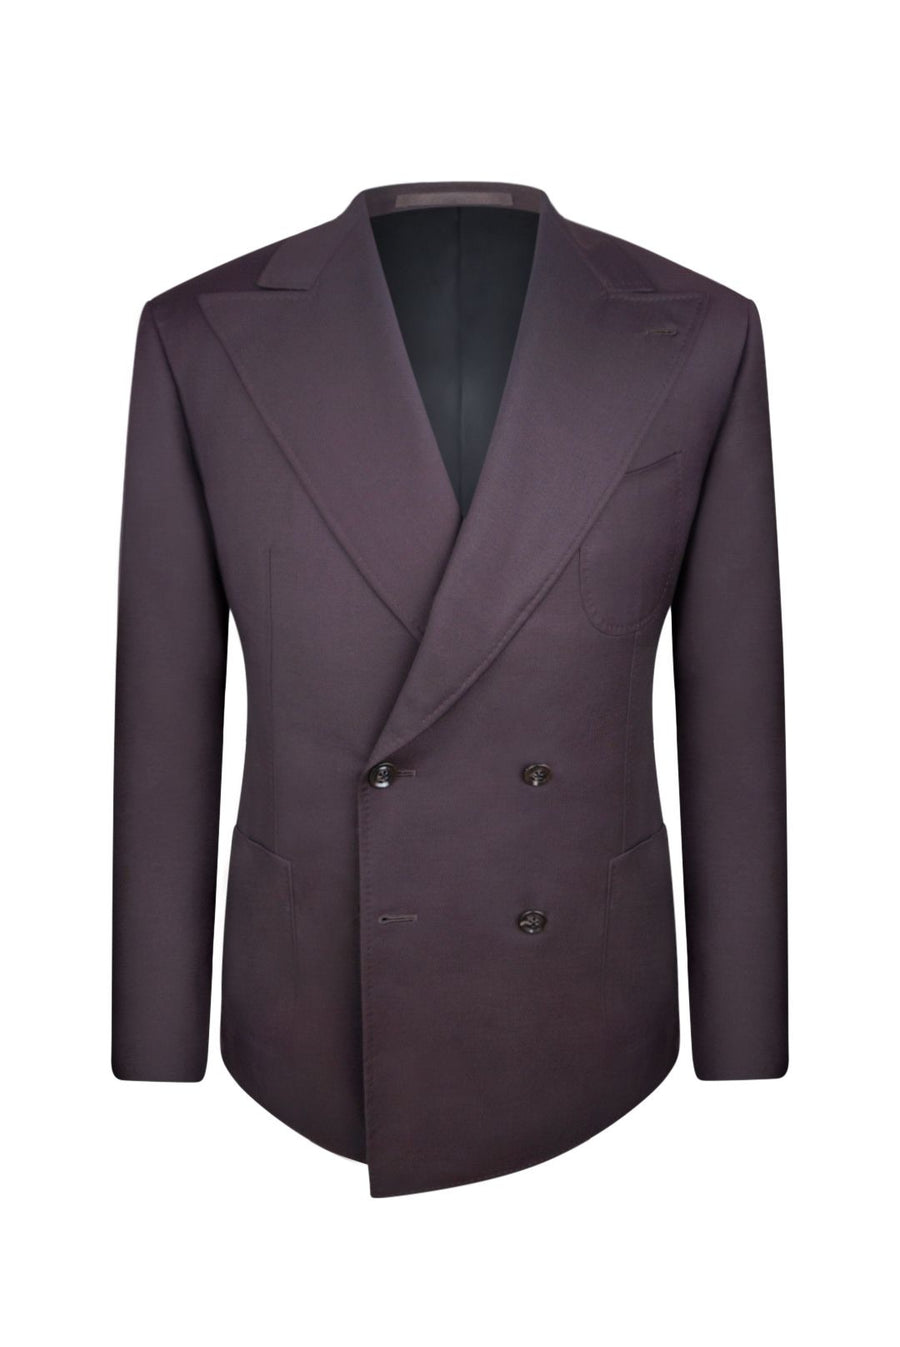 Midnight Mahogany Double Breasted Suit Jacket